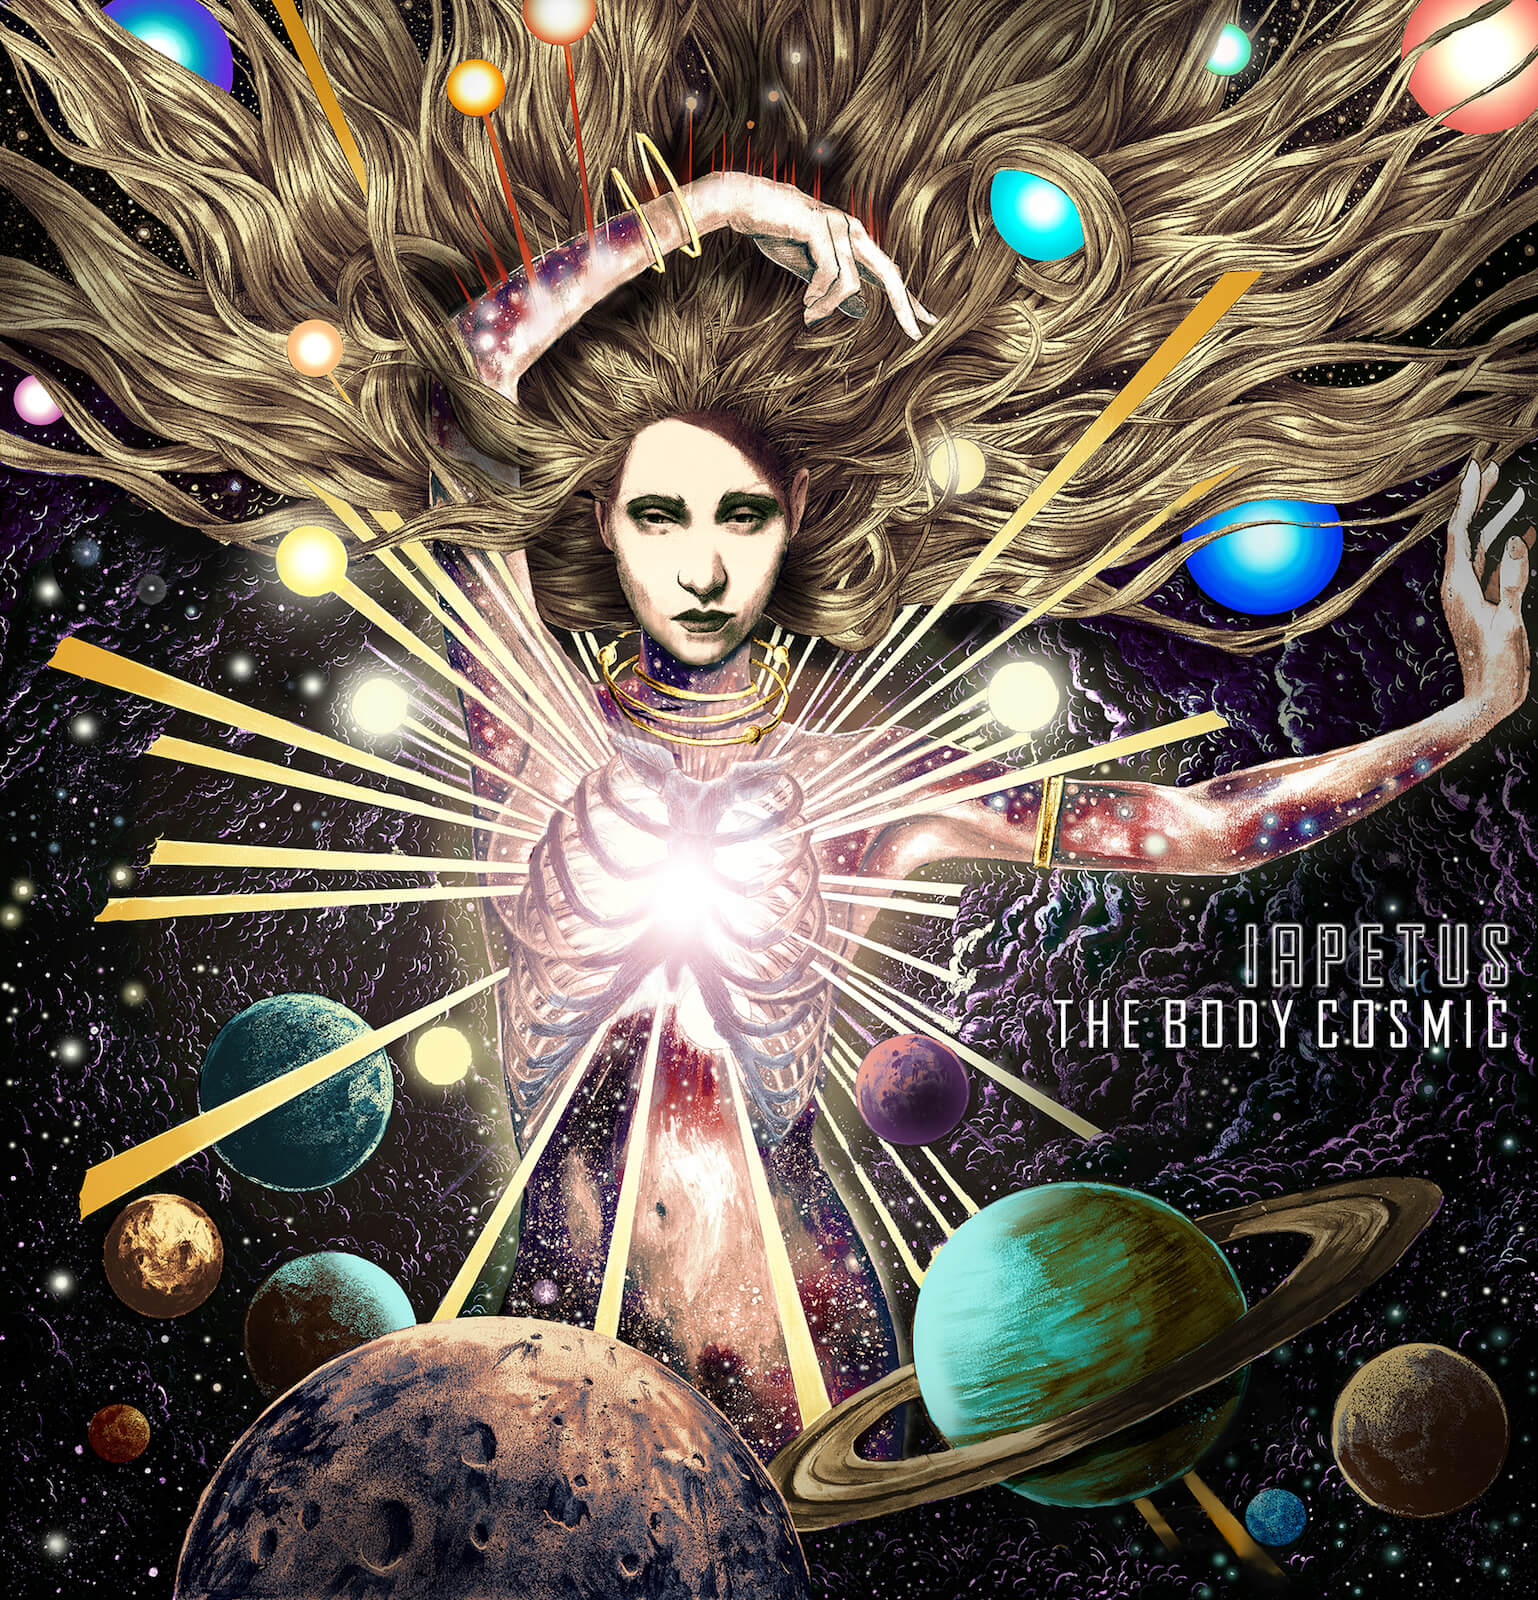 Iapetus – The Body Cosmic